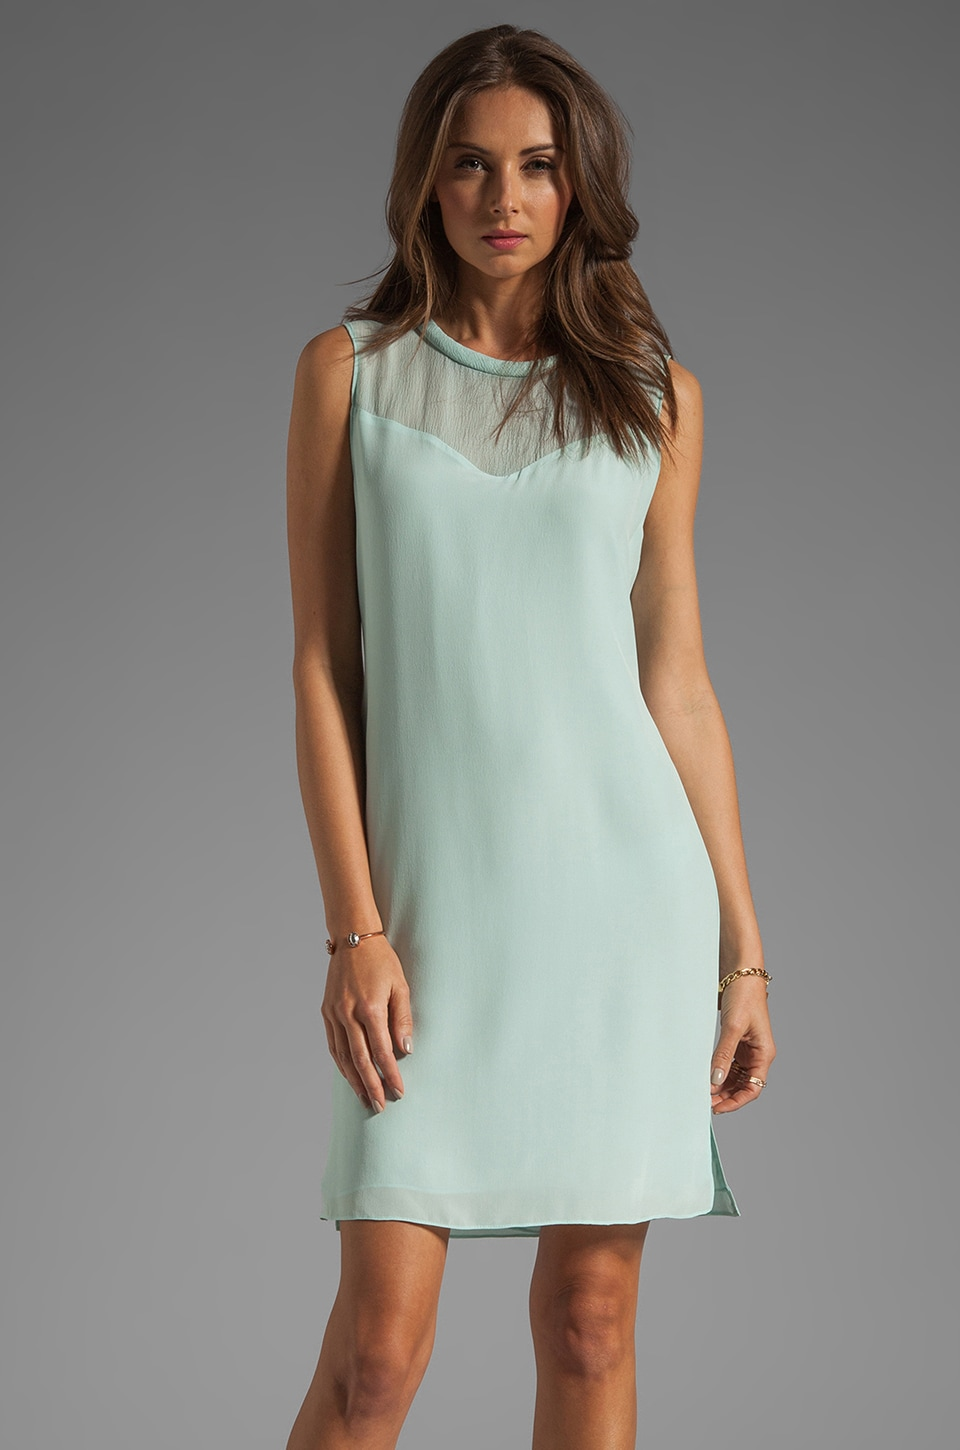 Rebecca Taylor Classic Shift Dress in Mist